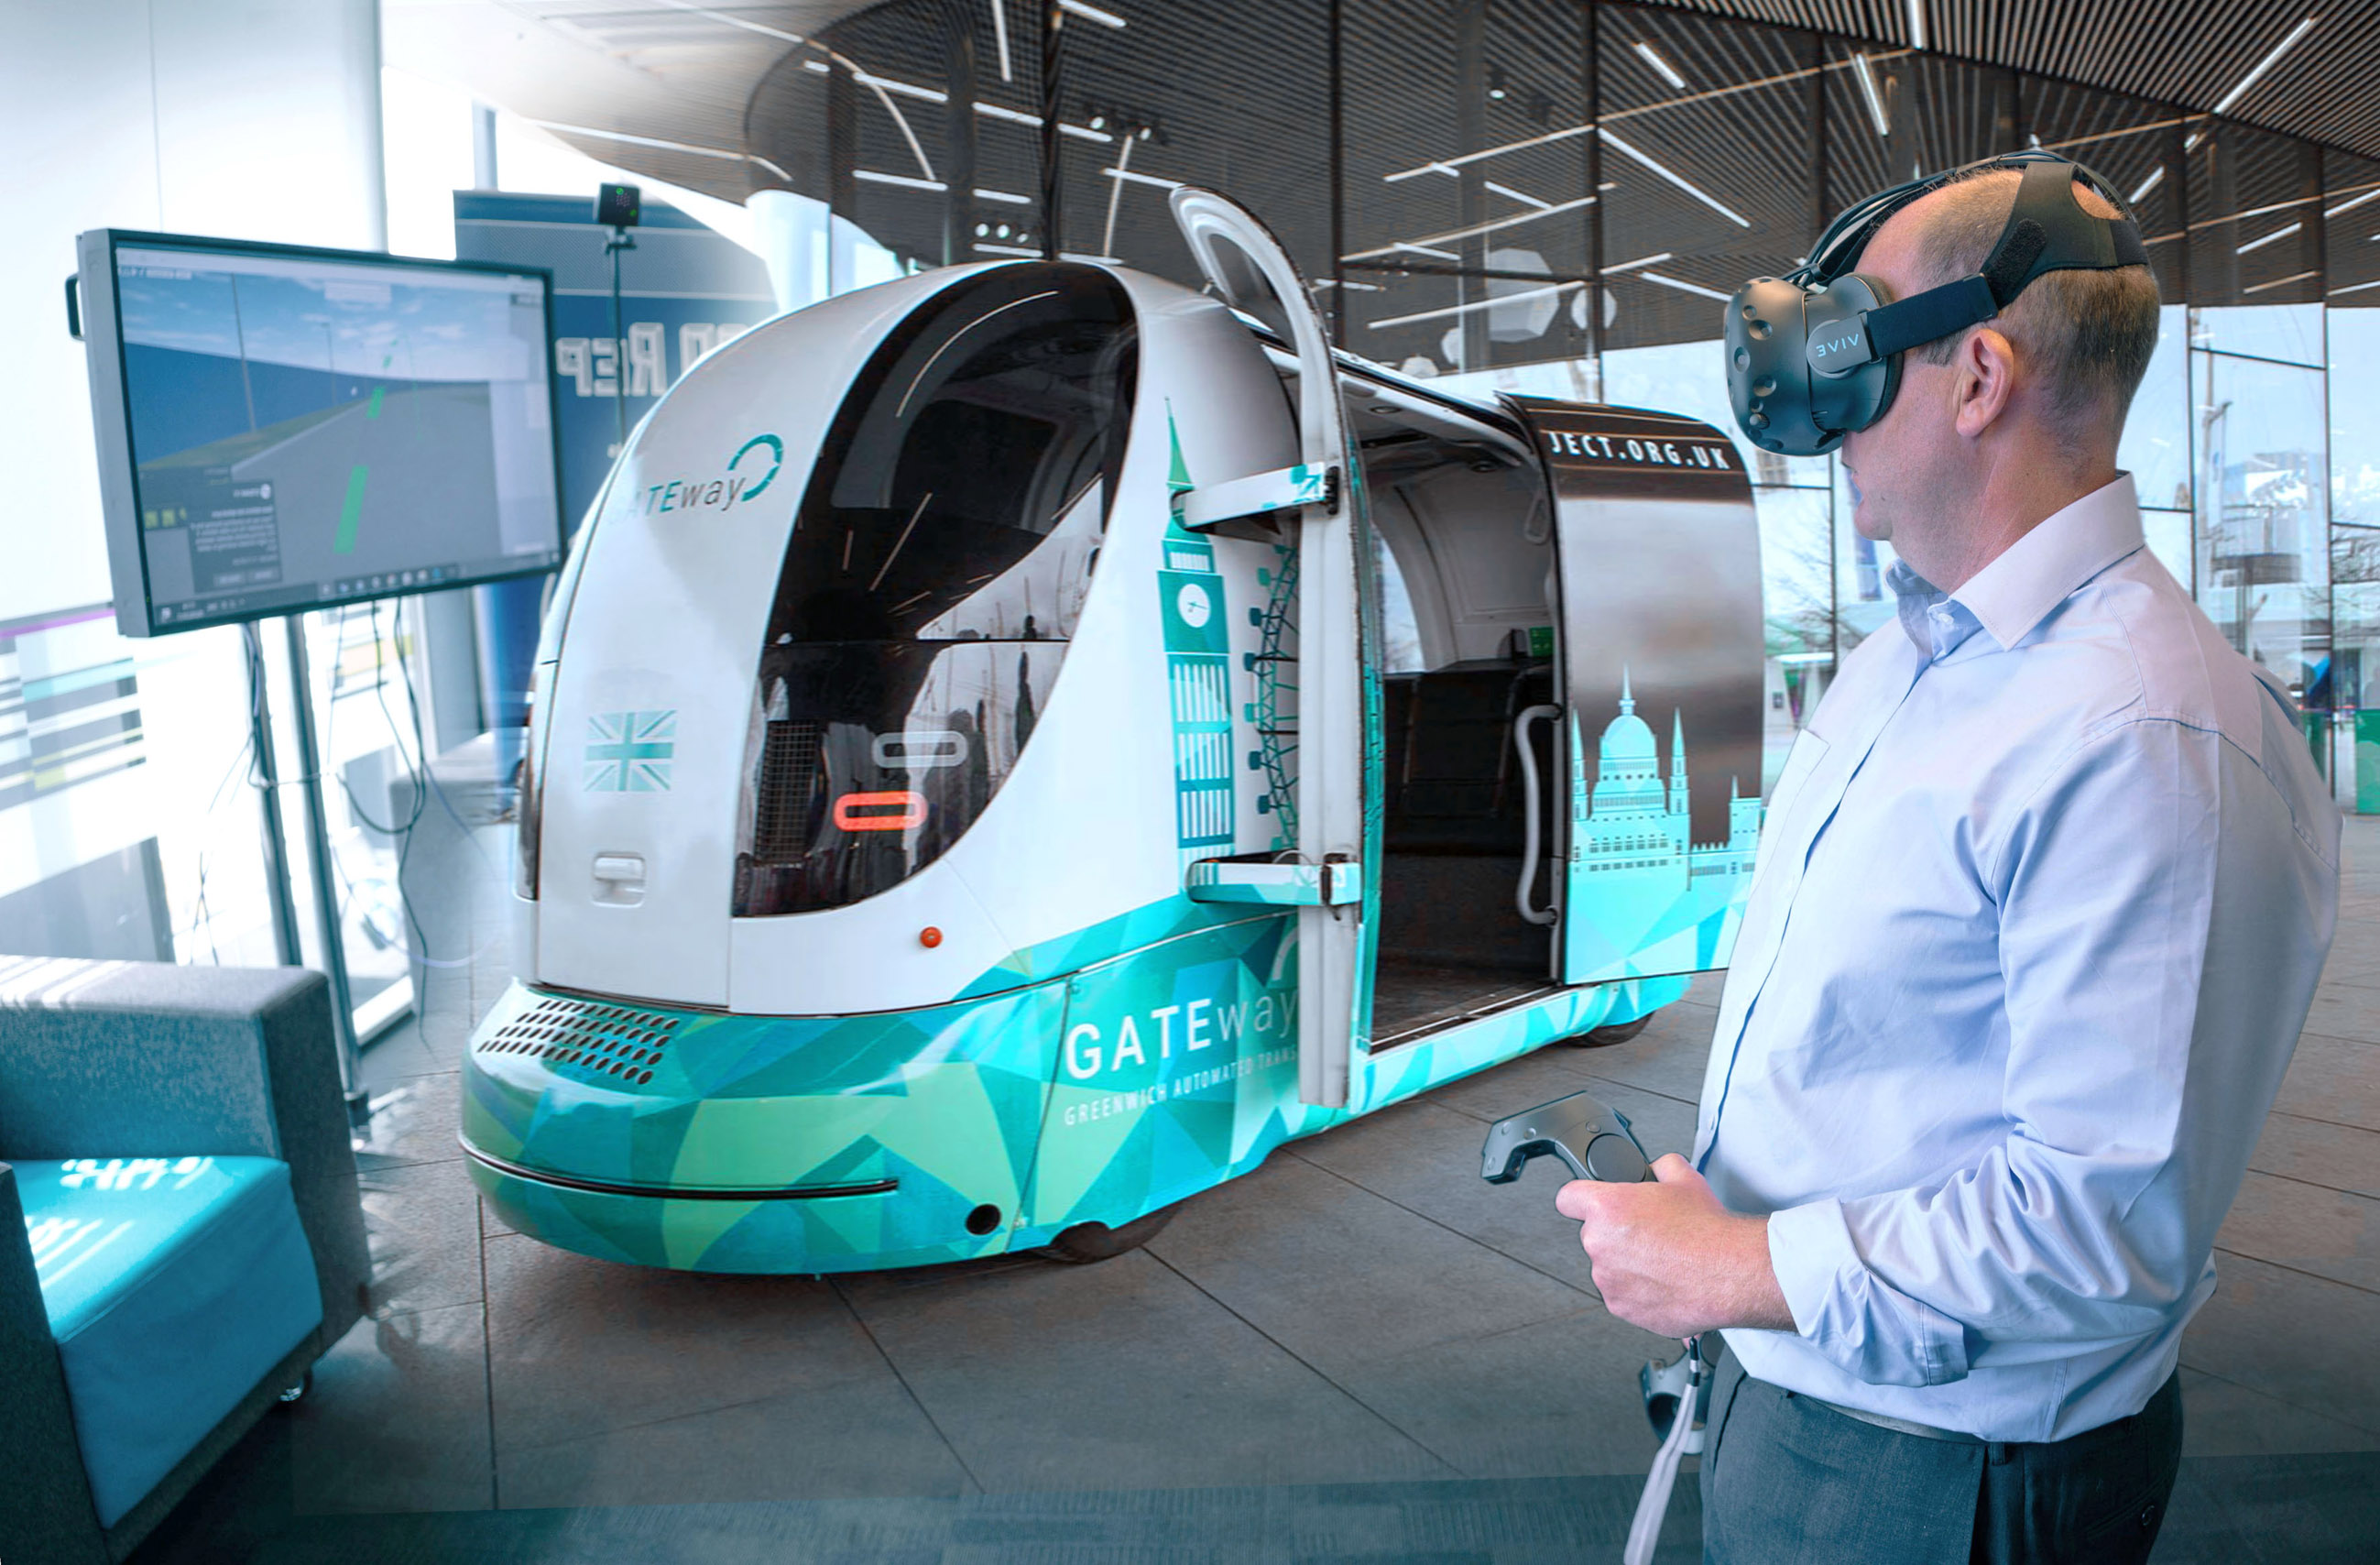 3d repo u2019s vr simulator helps trl shape future of autonomous vehicle services